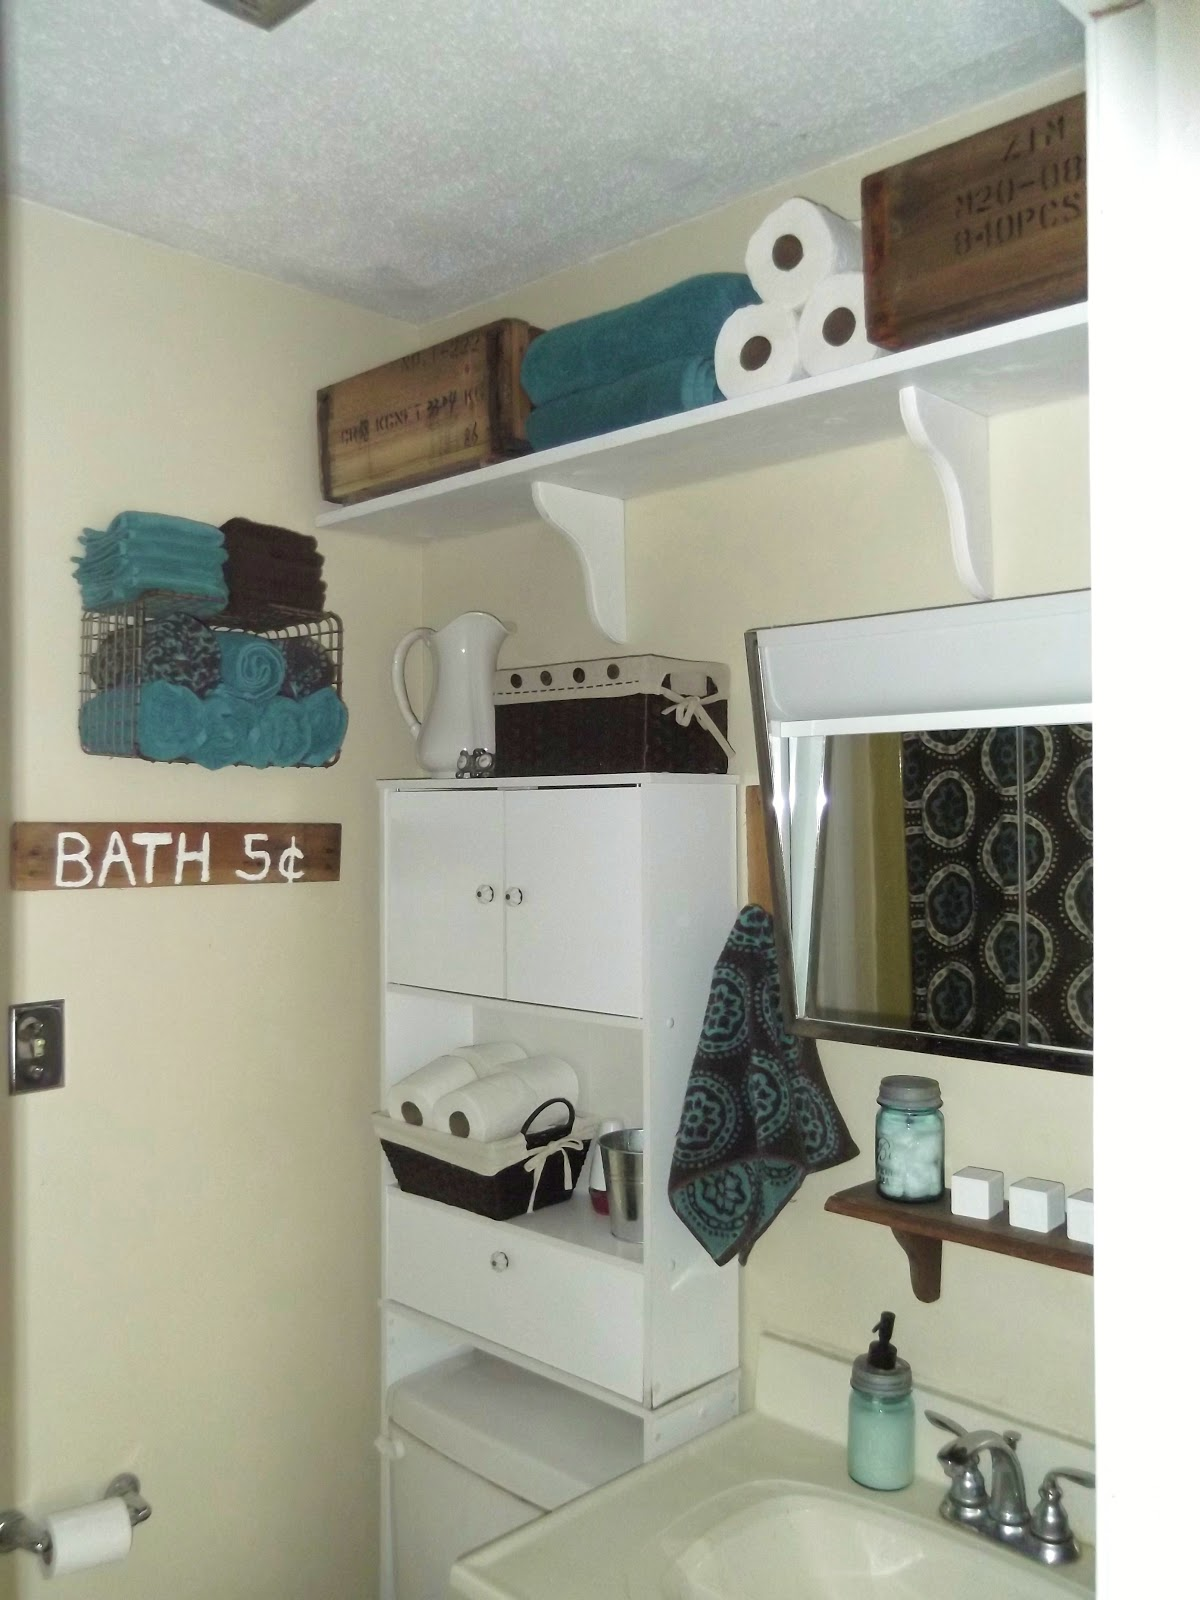 thrifty 31 blog a new bathroom shelf some kitchen redecorating